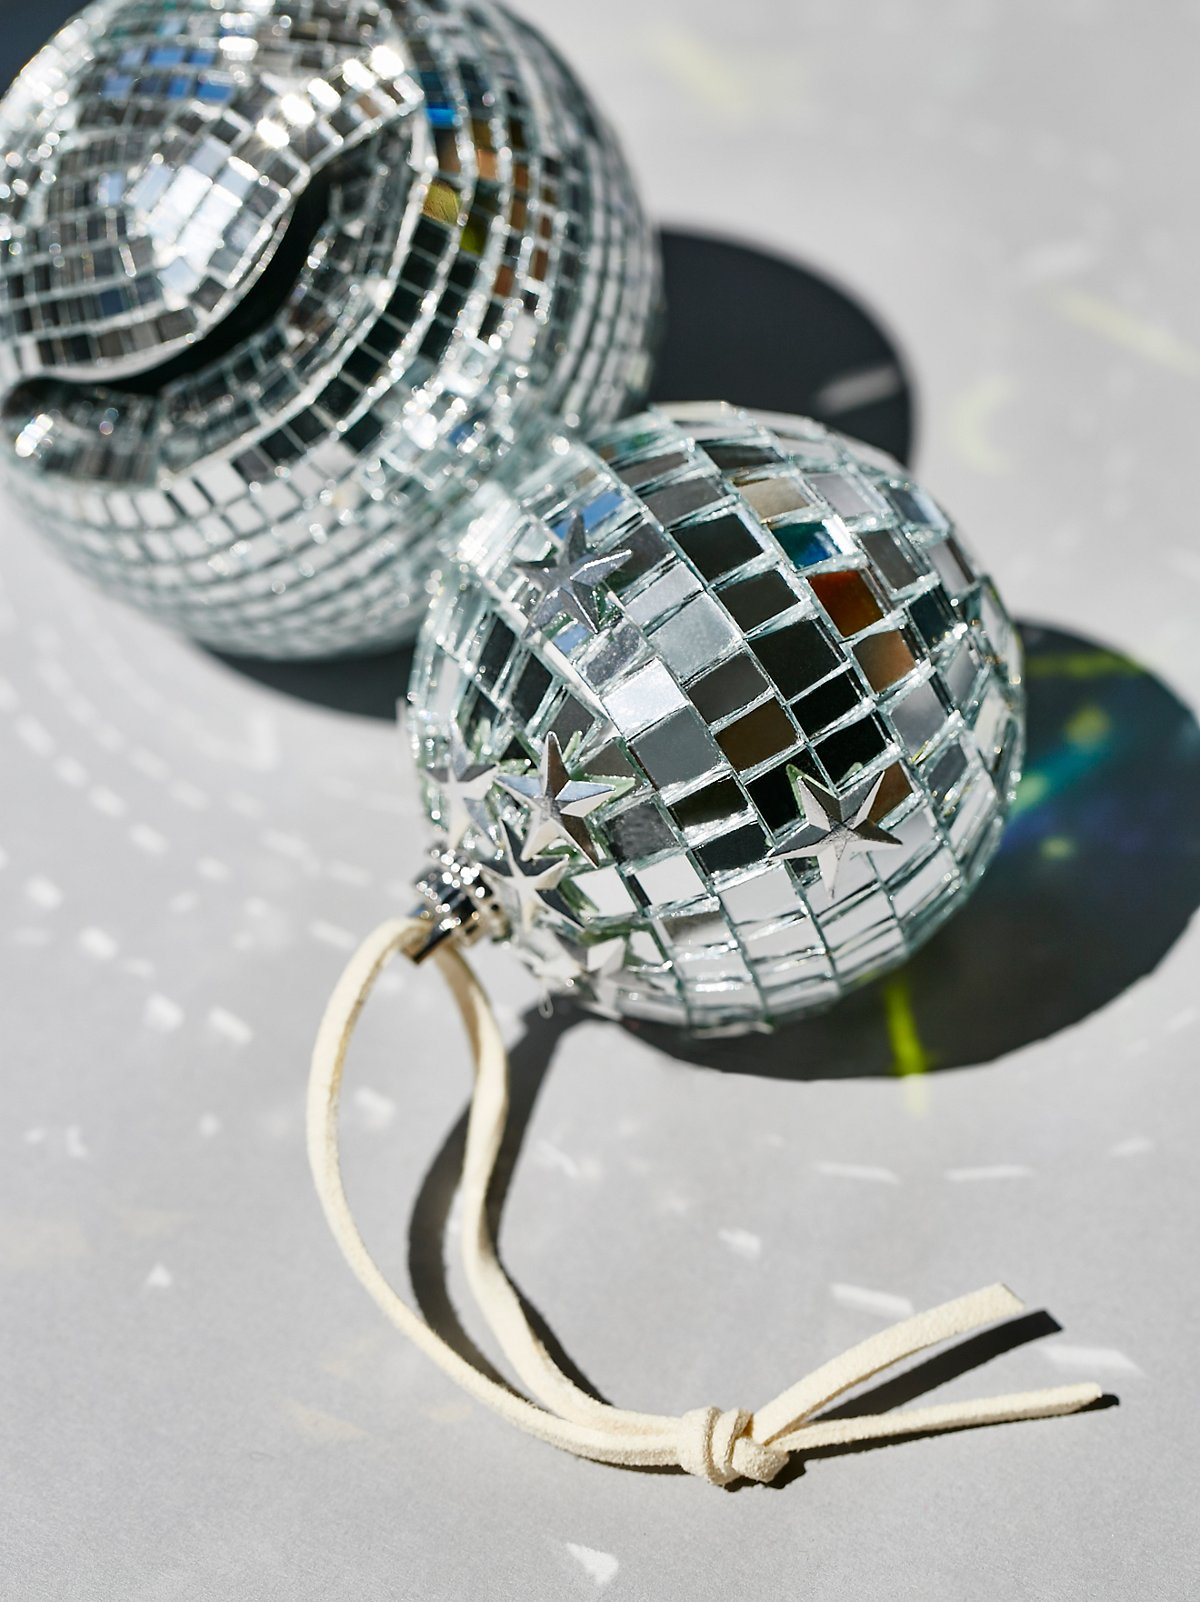 Free People Mini Disco Ball Ornament - Deck Your Halls Christmas Ornaments and Home Decor